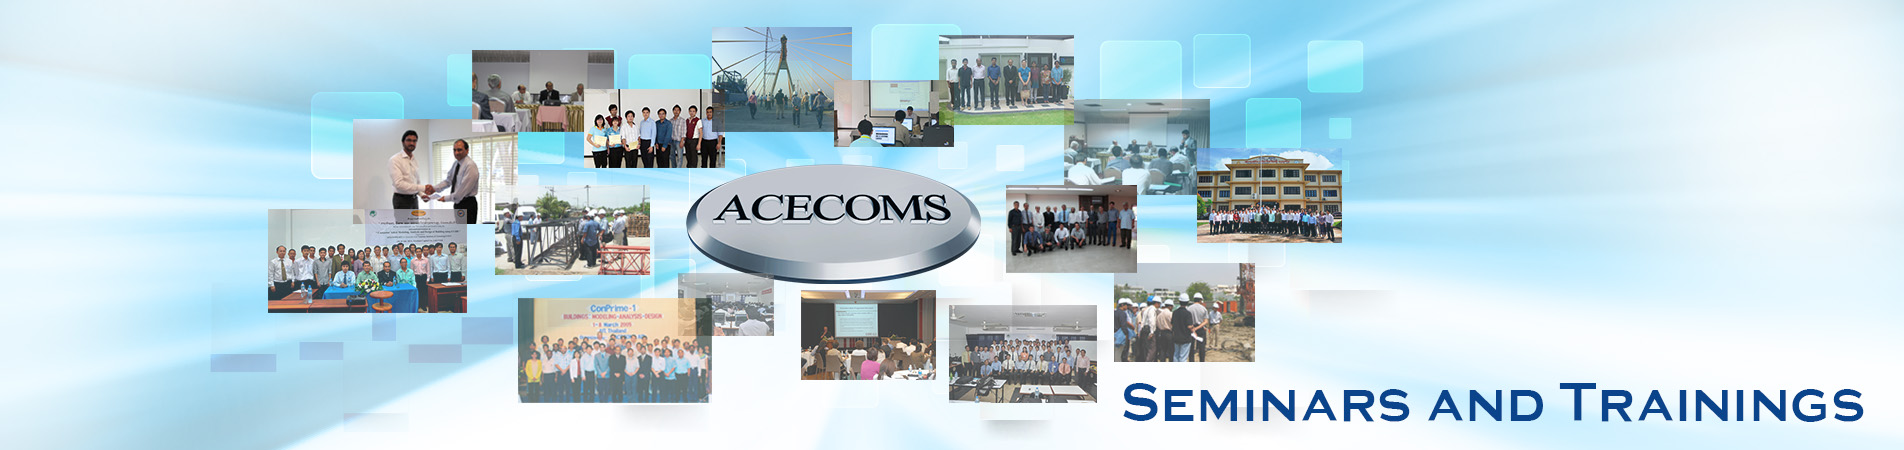 acecoms-banner-training